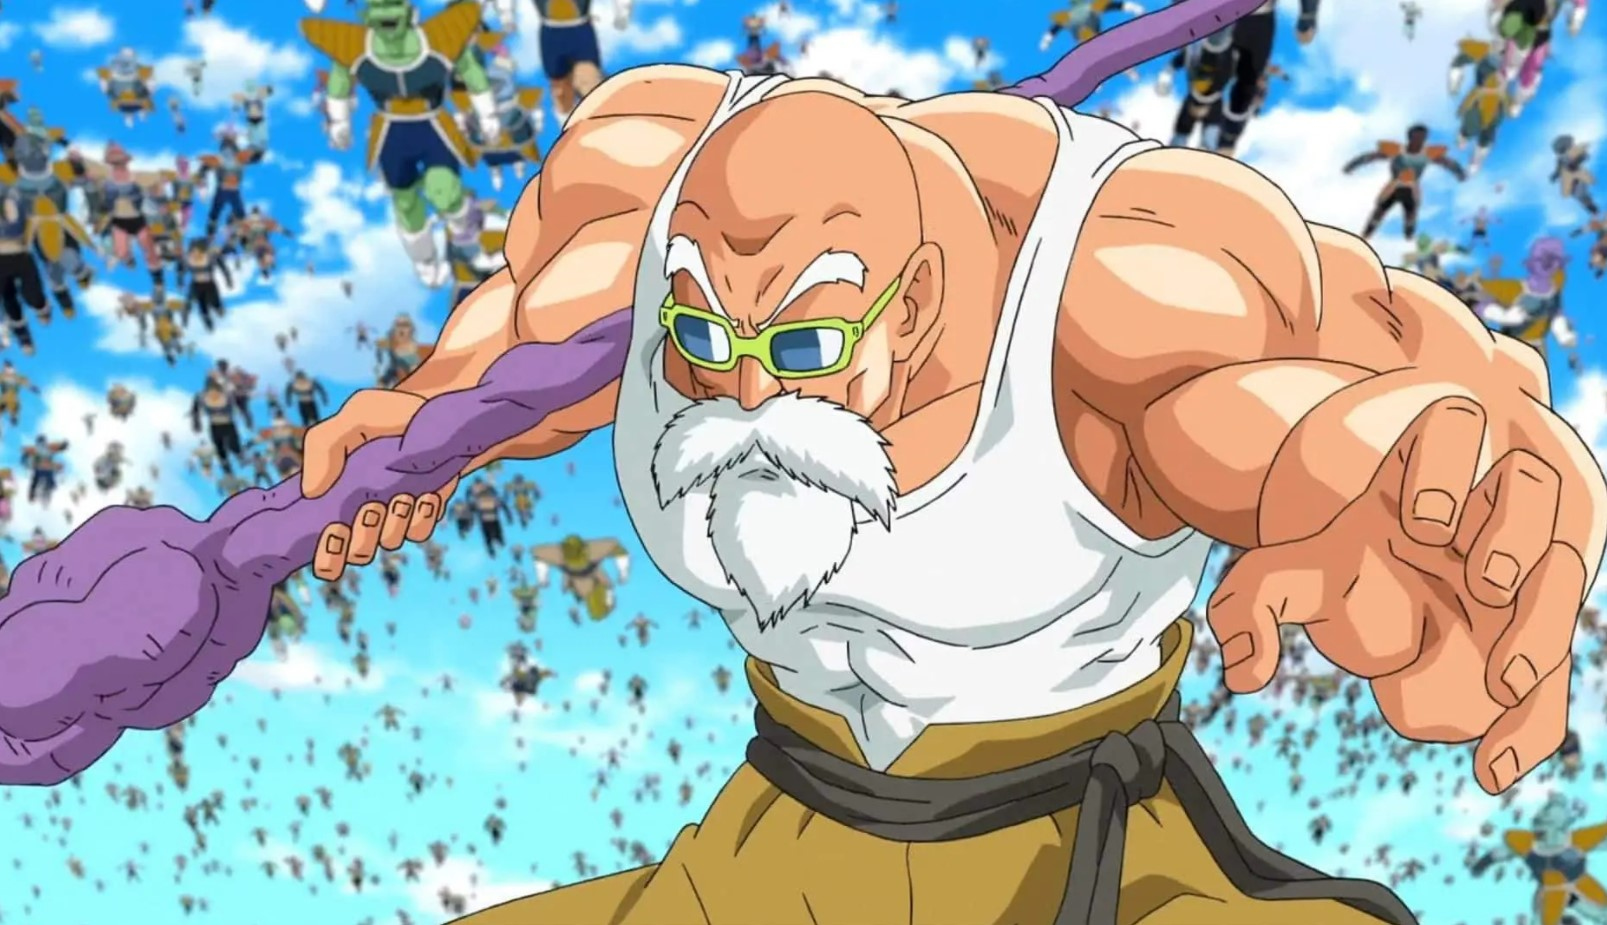 El Maestro Roshi es el próximo luchador de Dragon Ball FighterZ